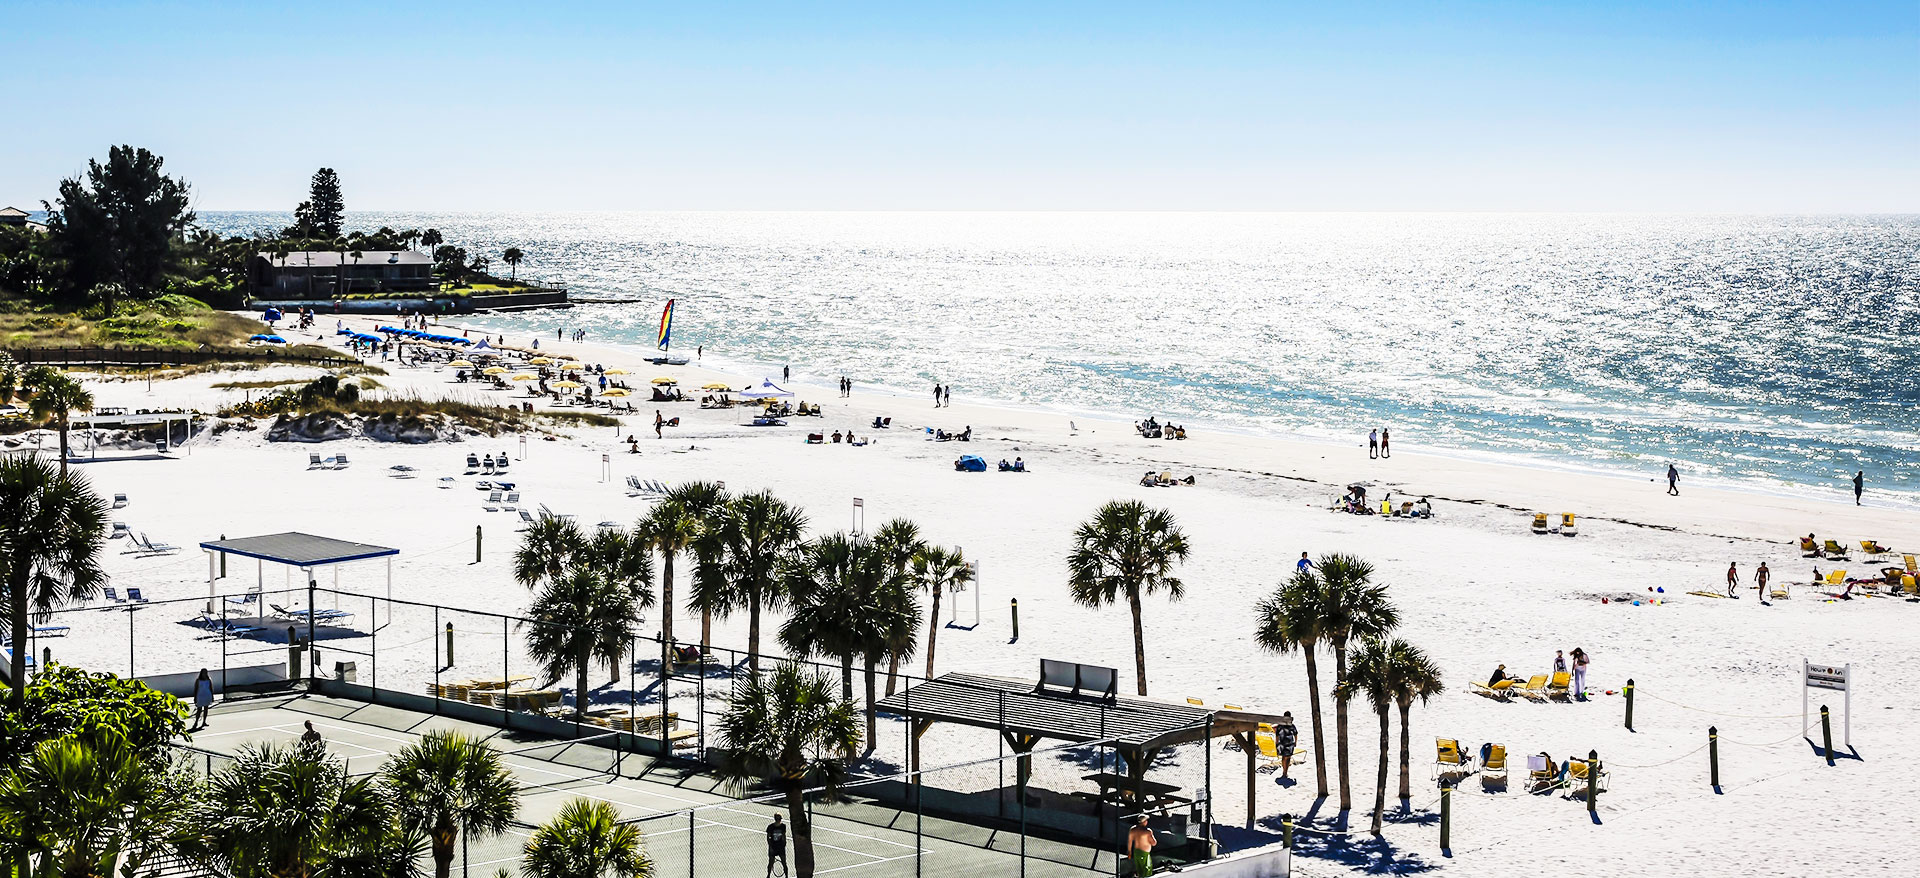 Things To Do at Sarasota, Florida